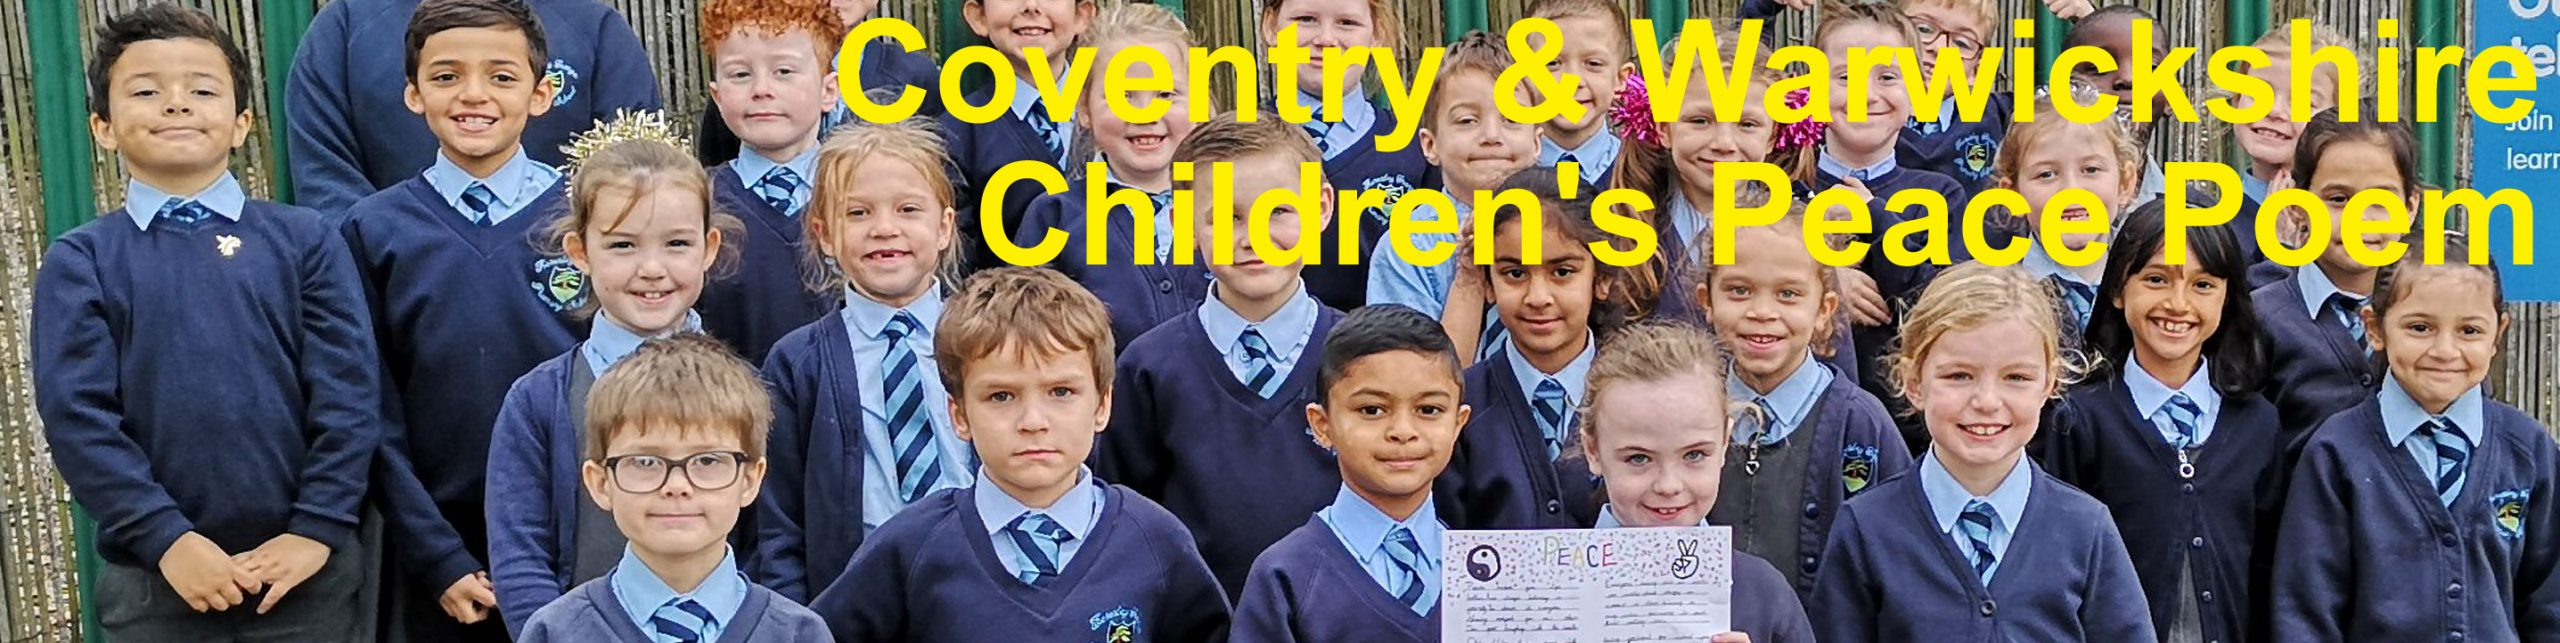 Coventry City of Peace